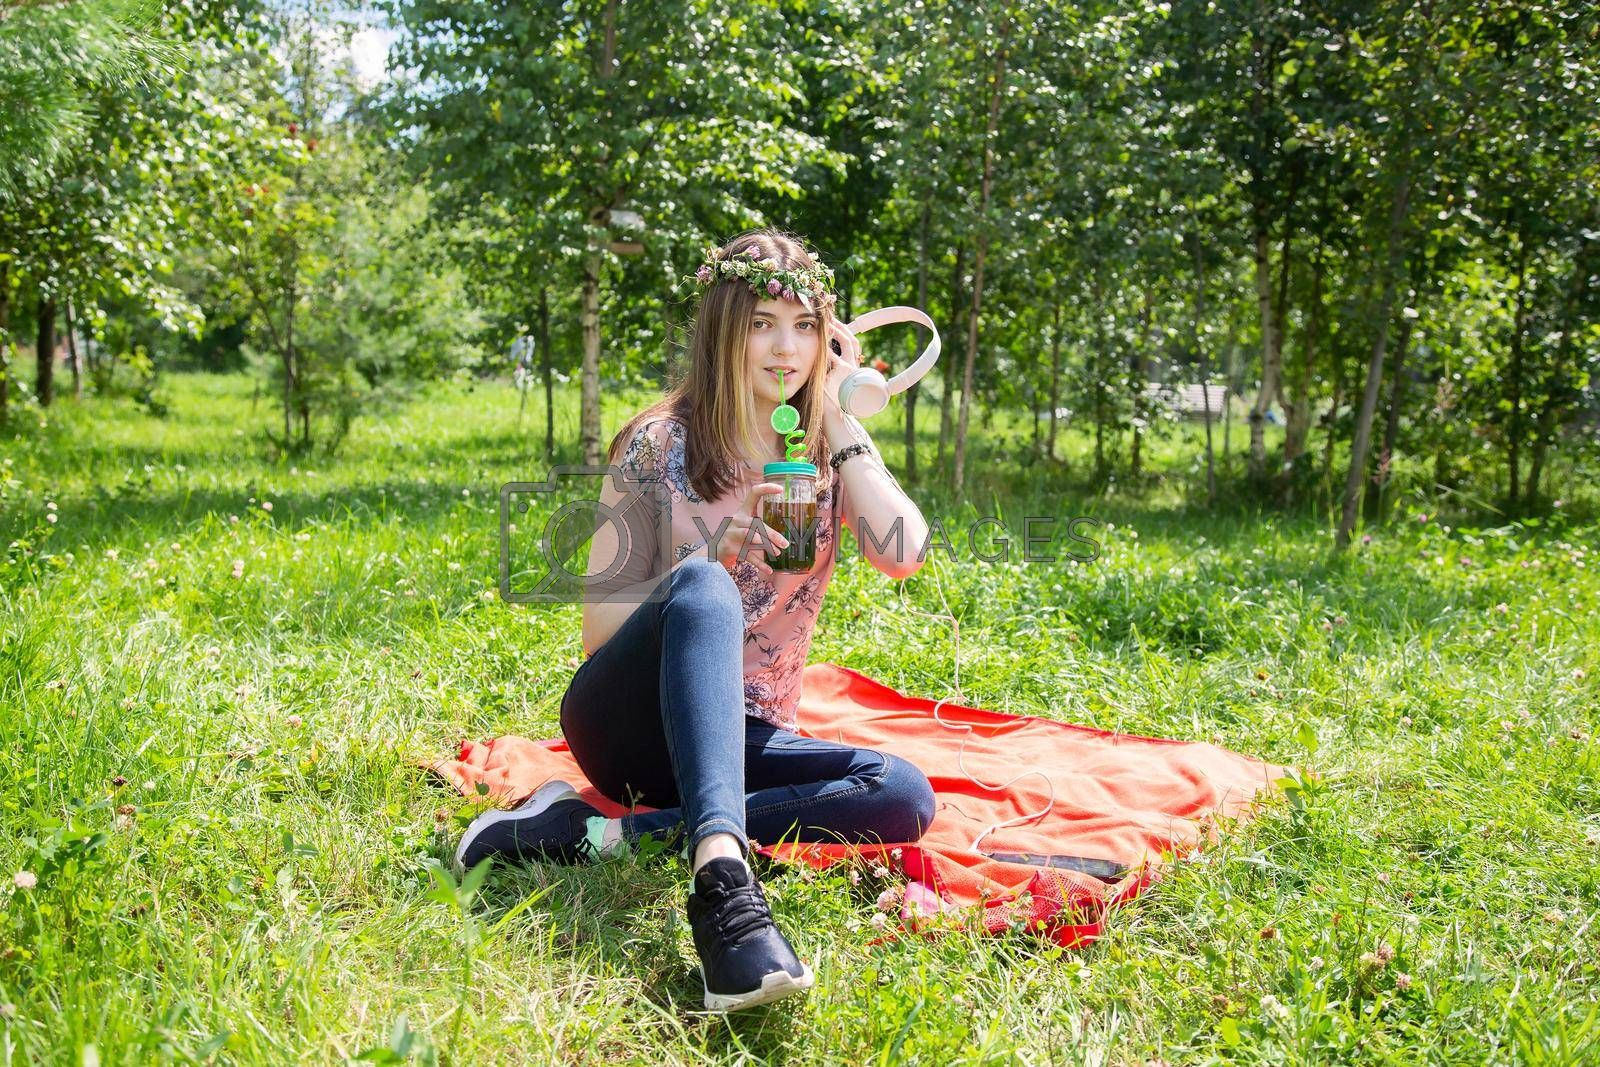 A young girl 20 years old Caucasian appearance listens to music while sitting on the lawn in the park on a summer day. The girl is dressed in a T-shirt and jeans and a wreath of wildflowers.